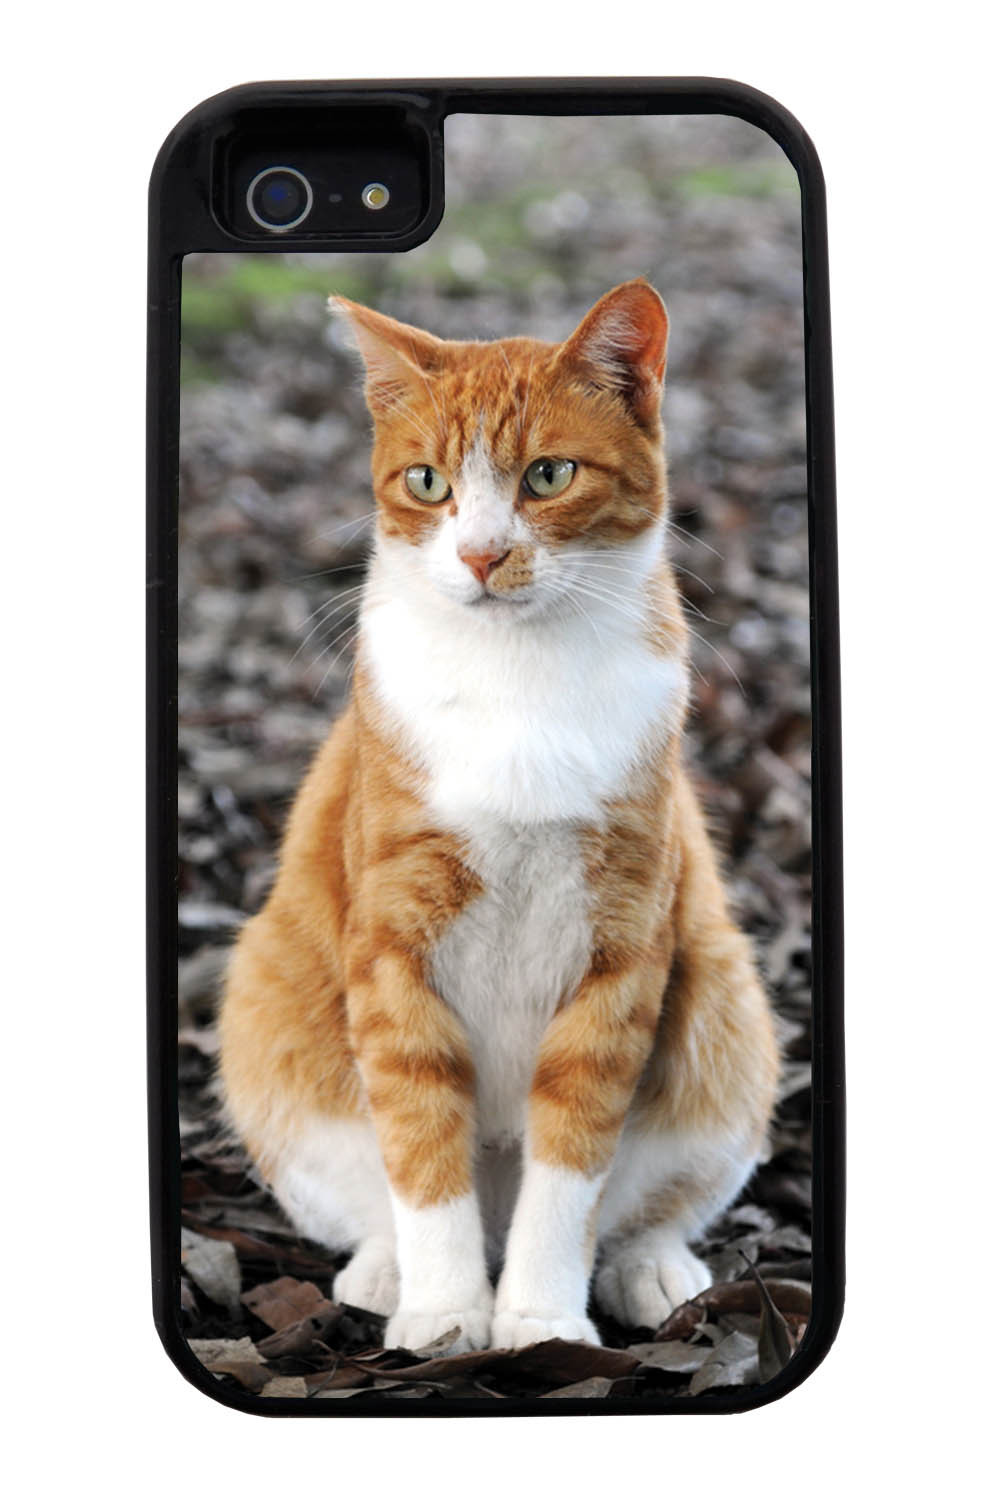 Apple iPhone 5 / 5S Cat Case - Sitting Cat Photo - Cute Pictures - Black Tough Hybrid Case